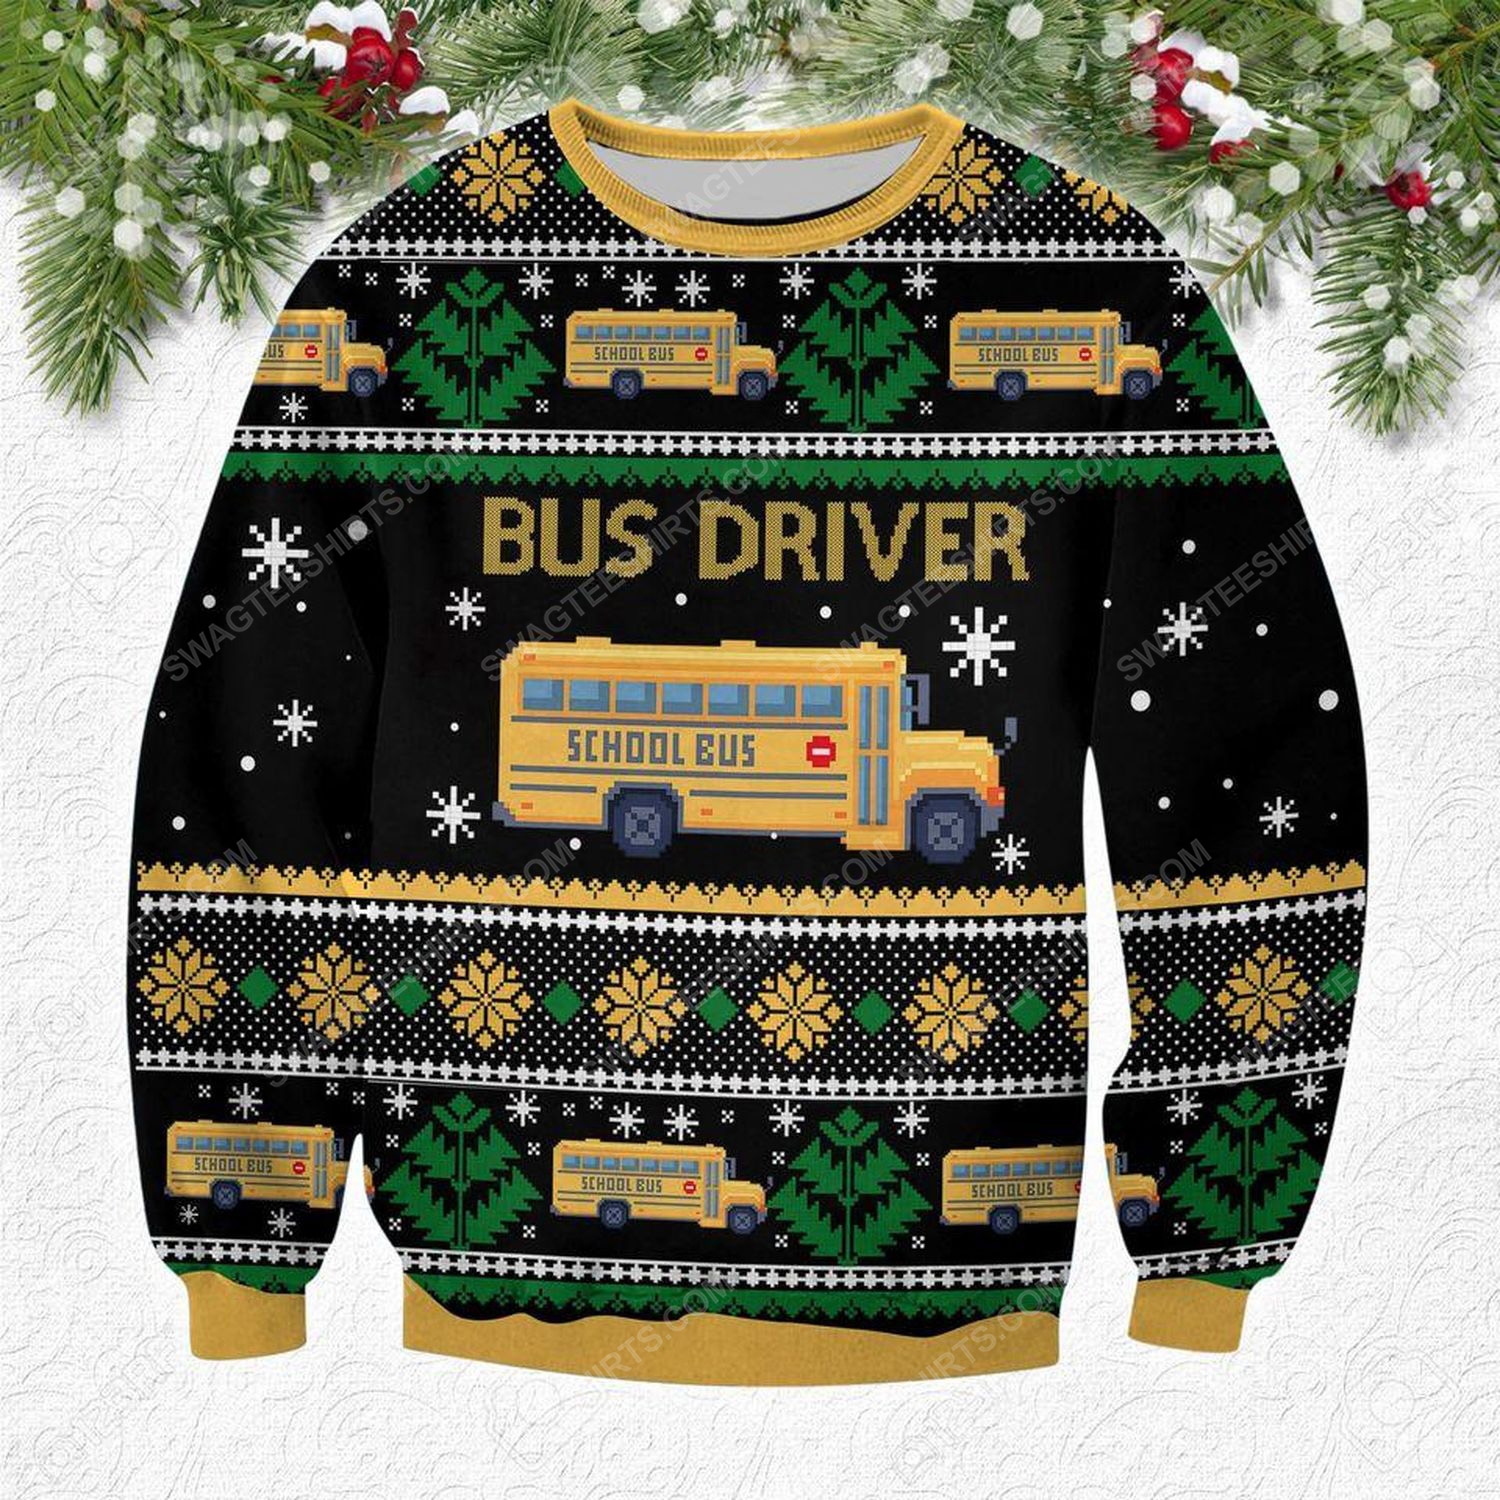 Bus driver all over print ugly christmas sweater 1